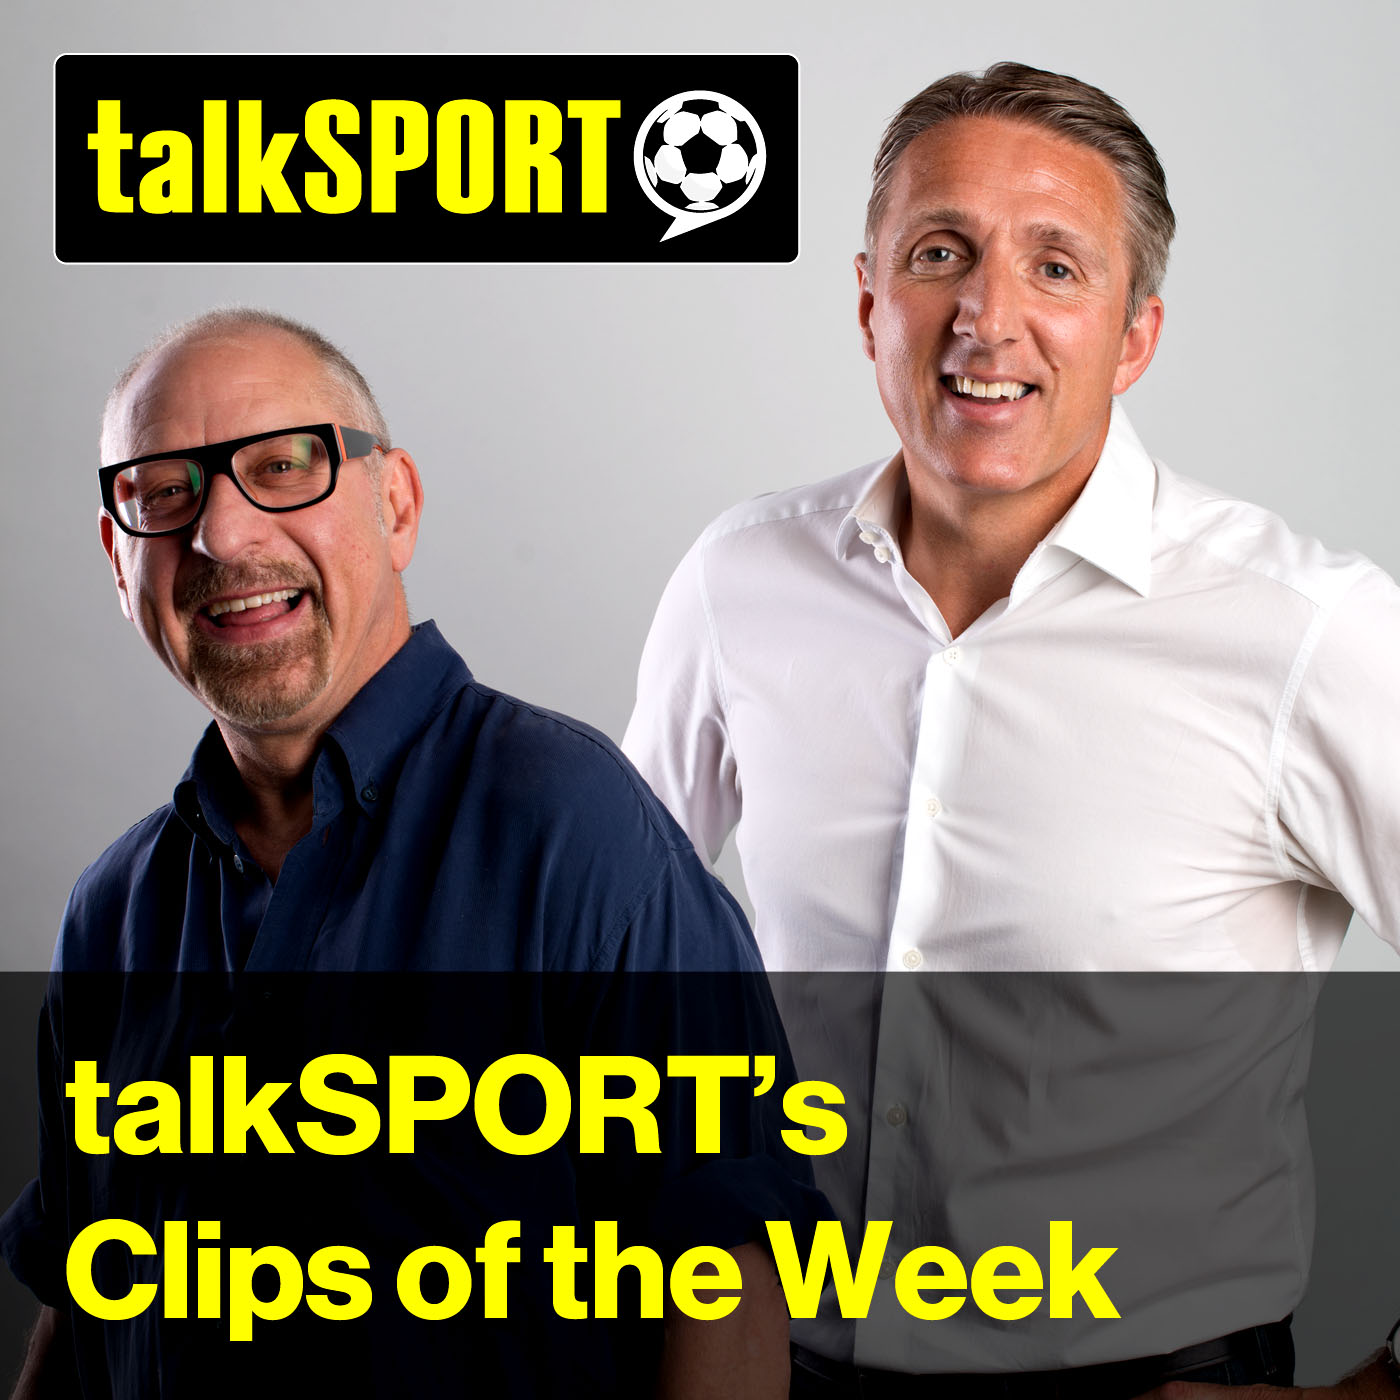 talkSPORT's Clips of the Week